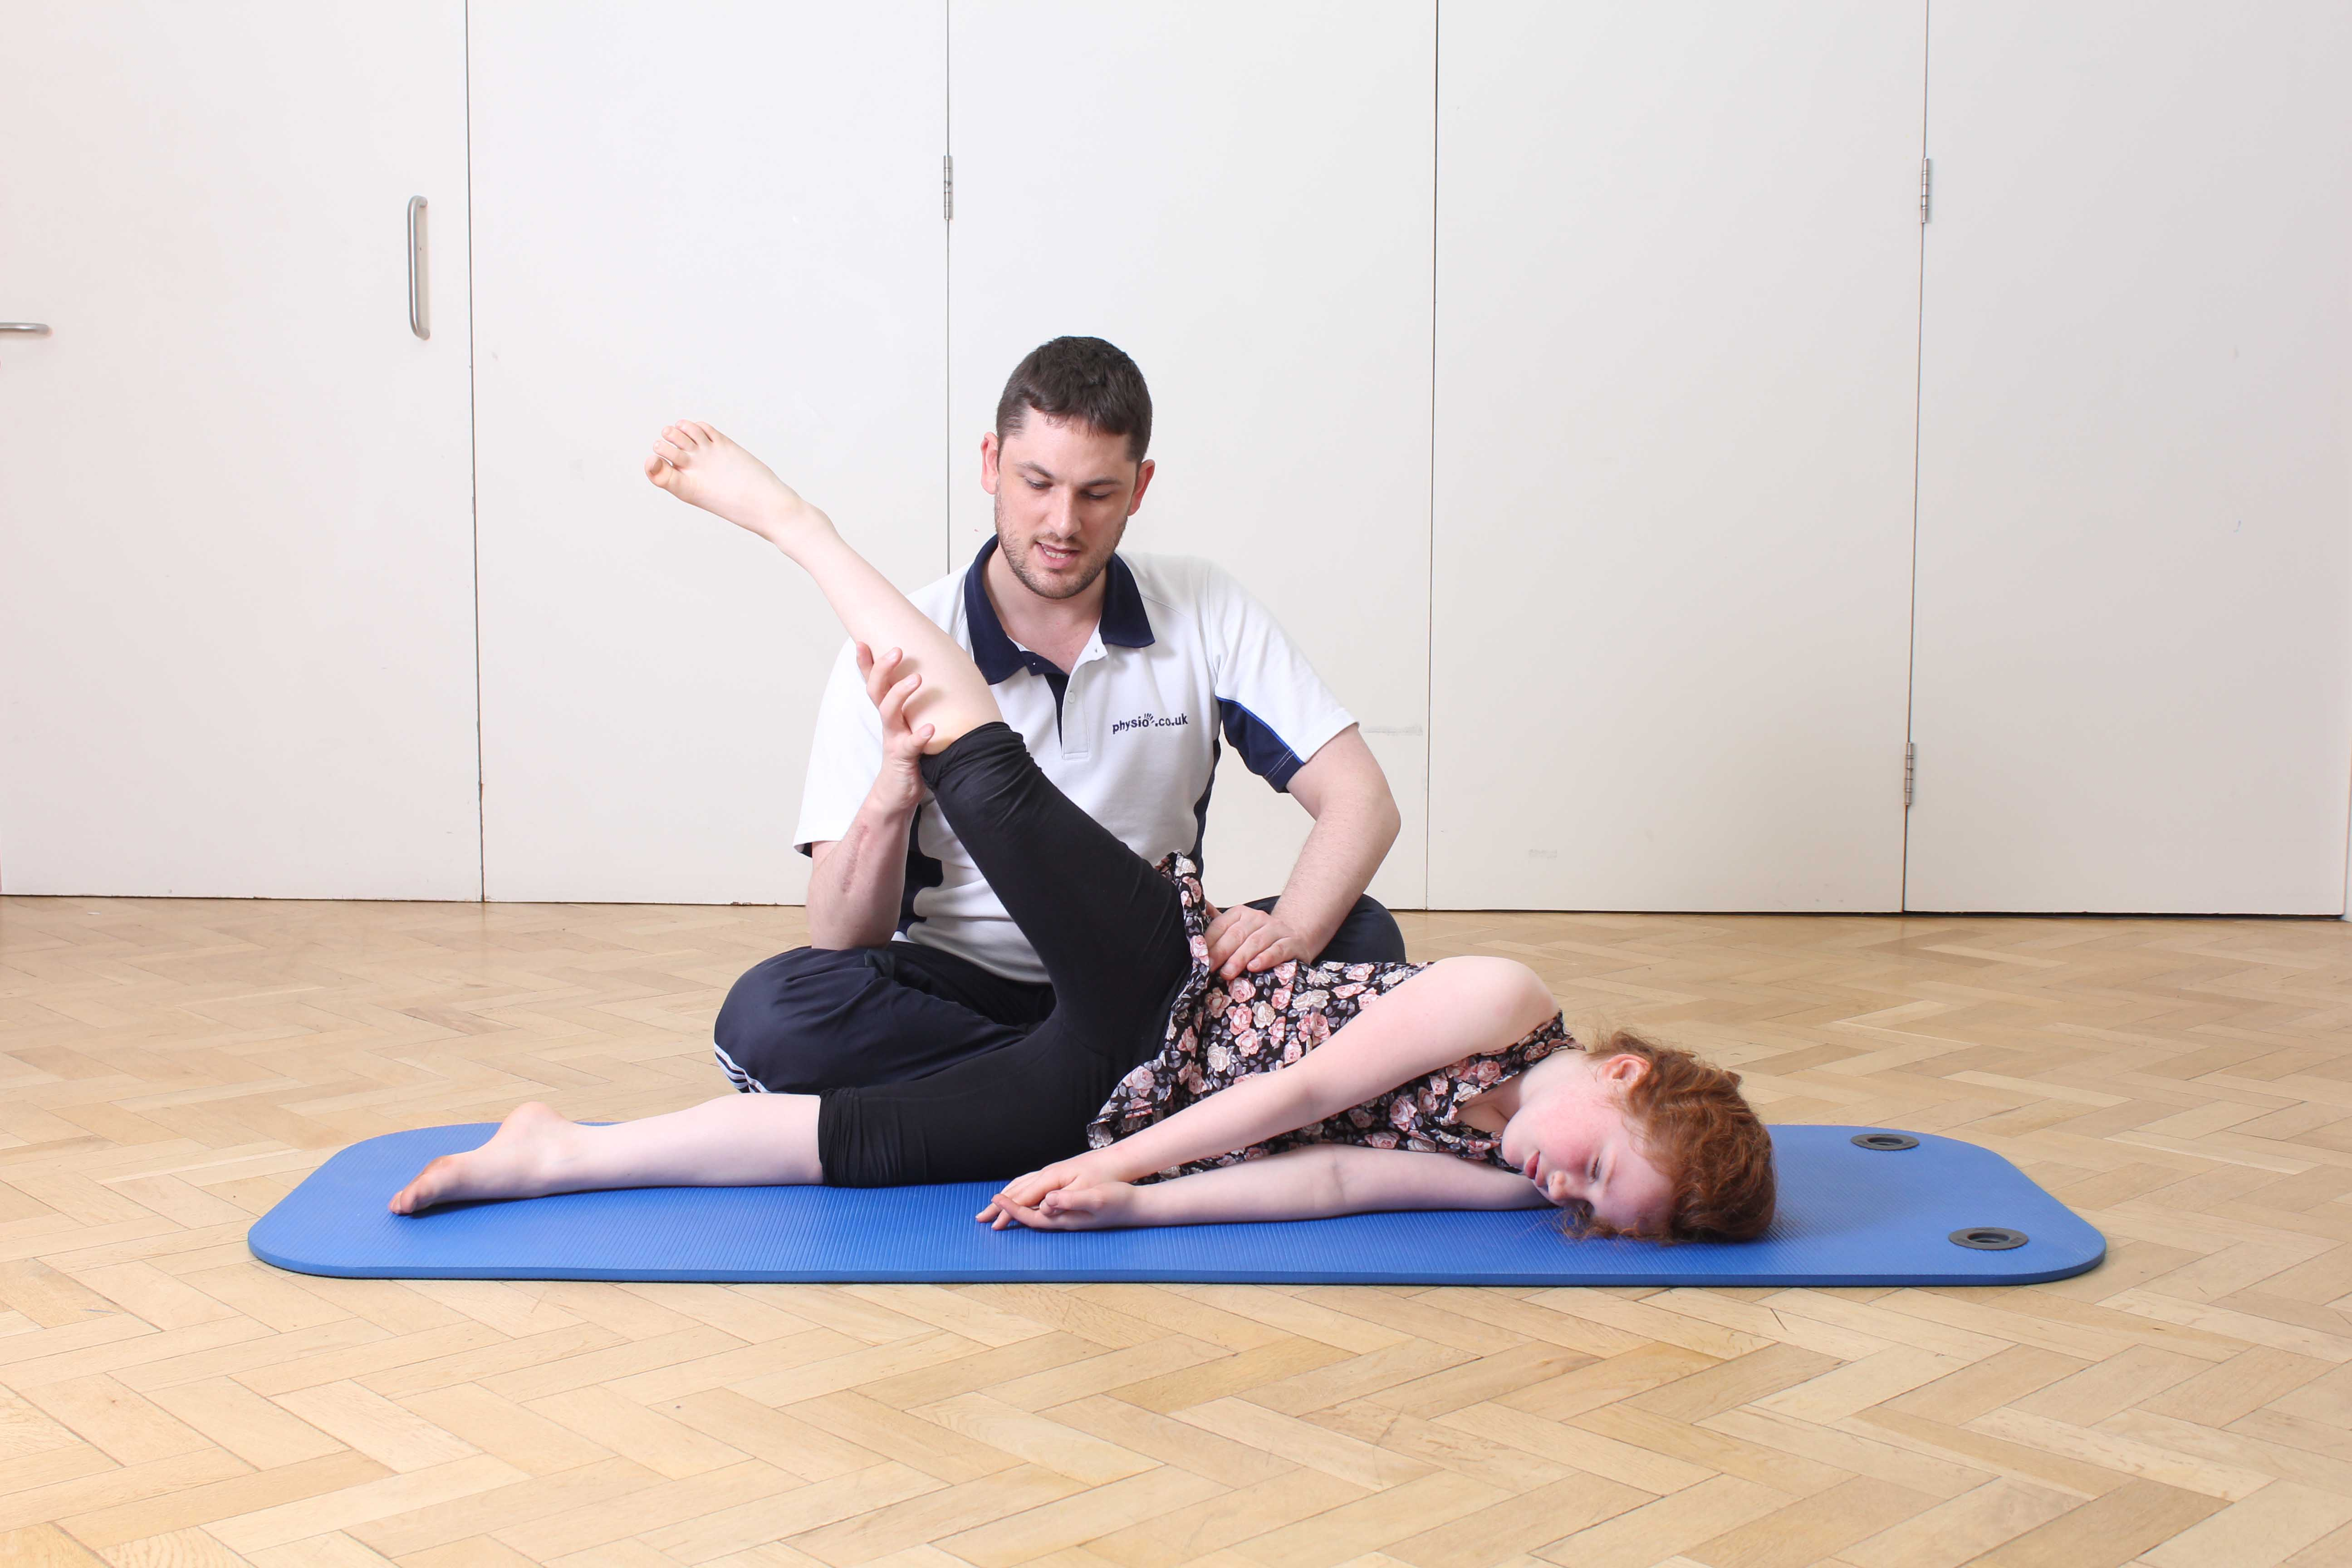 Physiotherapy treatment to help correct musculoskeletal conditions